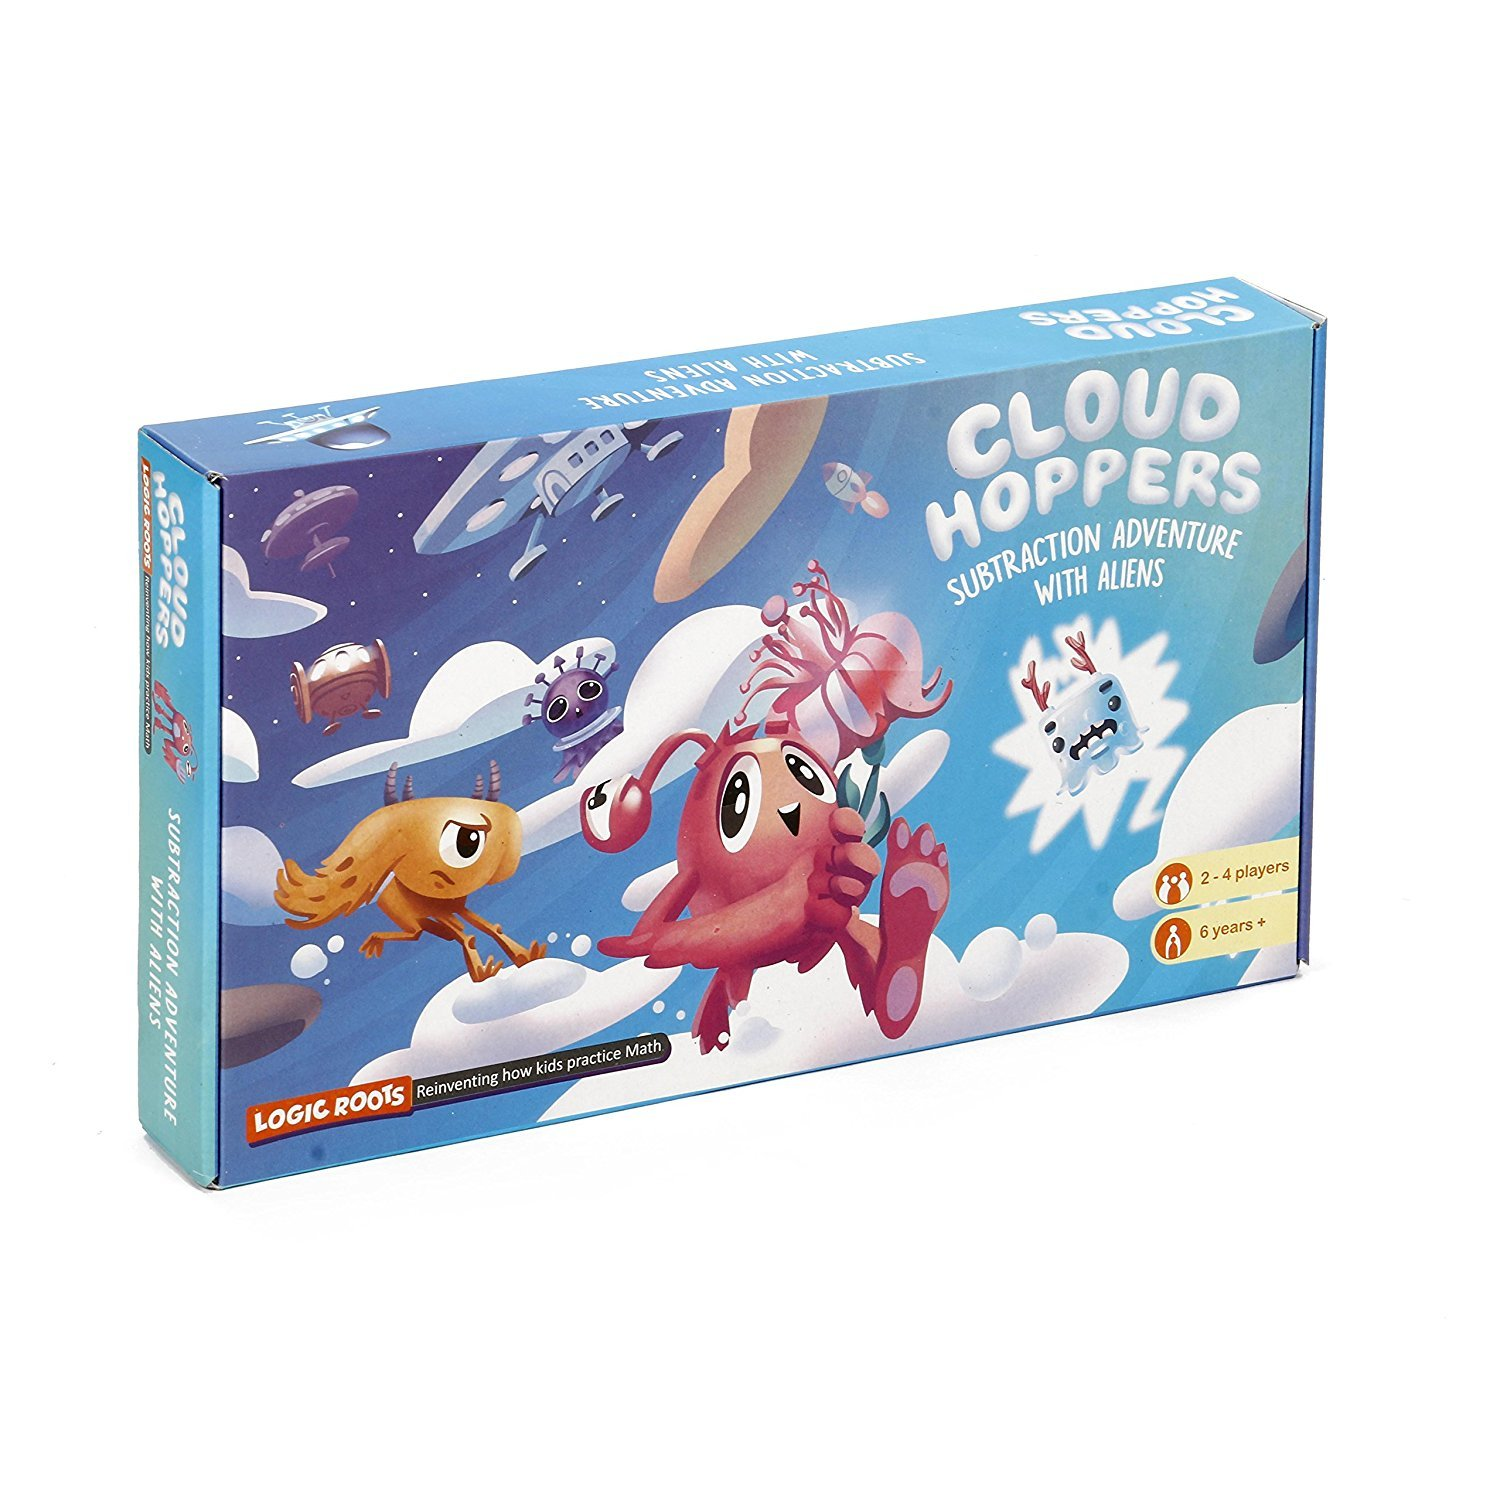 LogicRoots Ocean Raiders and Cloud Hoppers Bundle Stem Addition Subtraction Game for Kids of 5 Years and up